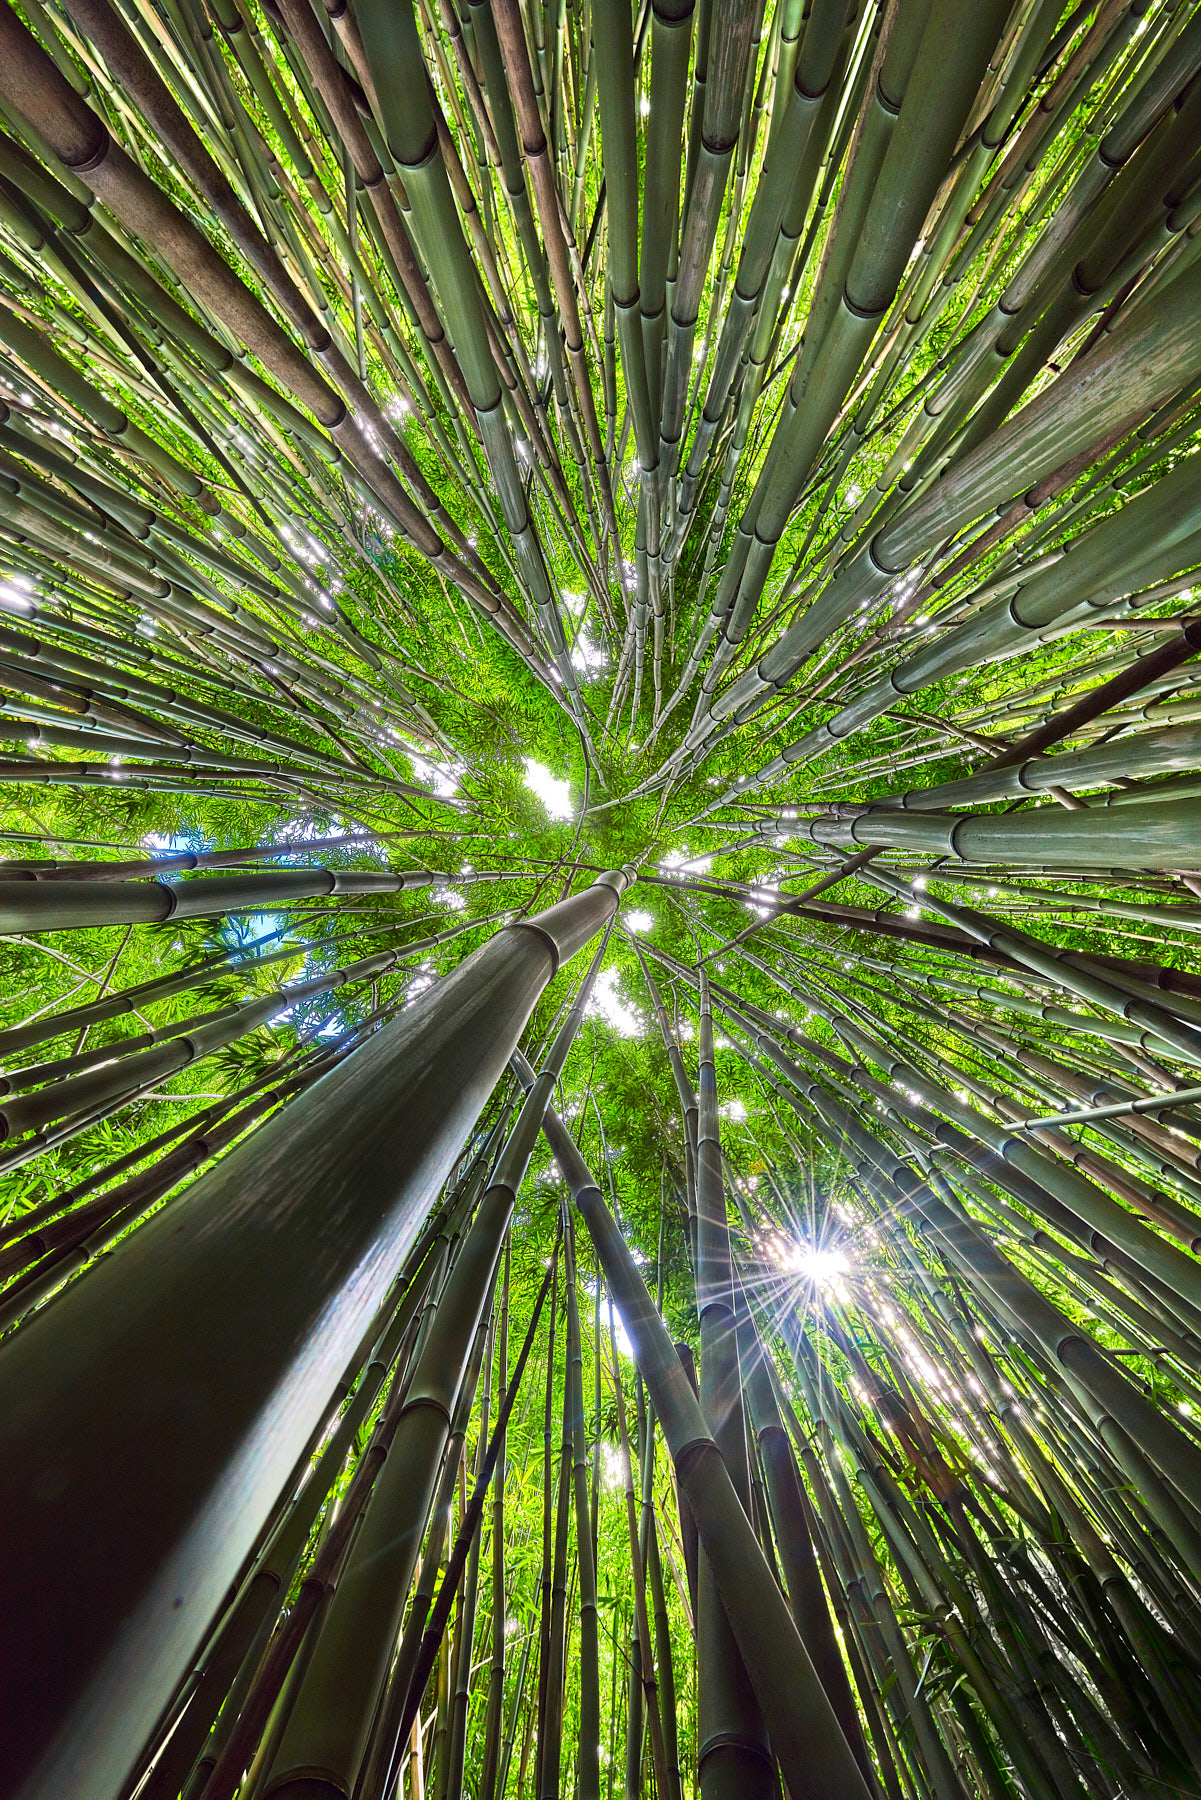 fun abstract image looking up towards the sun in the bamboo forest along the Pipiwai Trail near Hana, Maui in the state of Hawaii